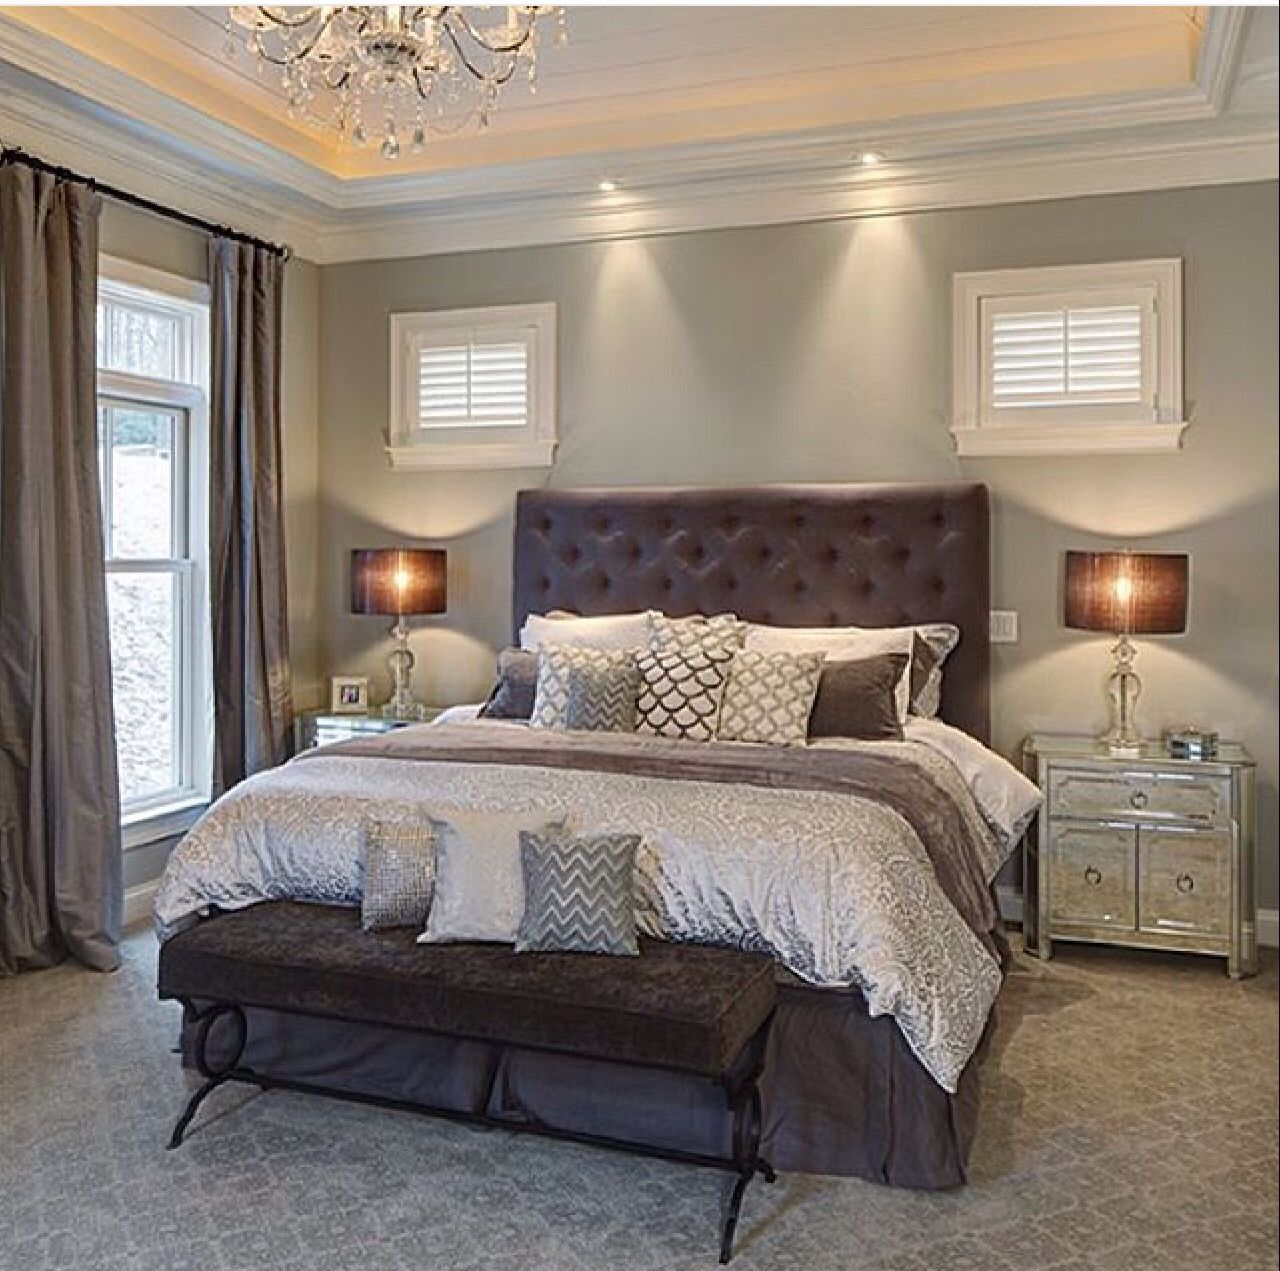 Pin On Master Bedroom Ideas: Soft Master Bedroom Wall Color. Love The Curtains